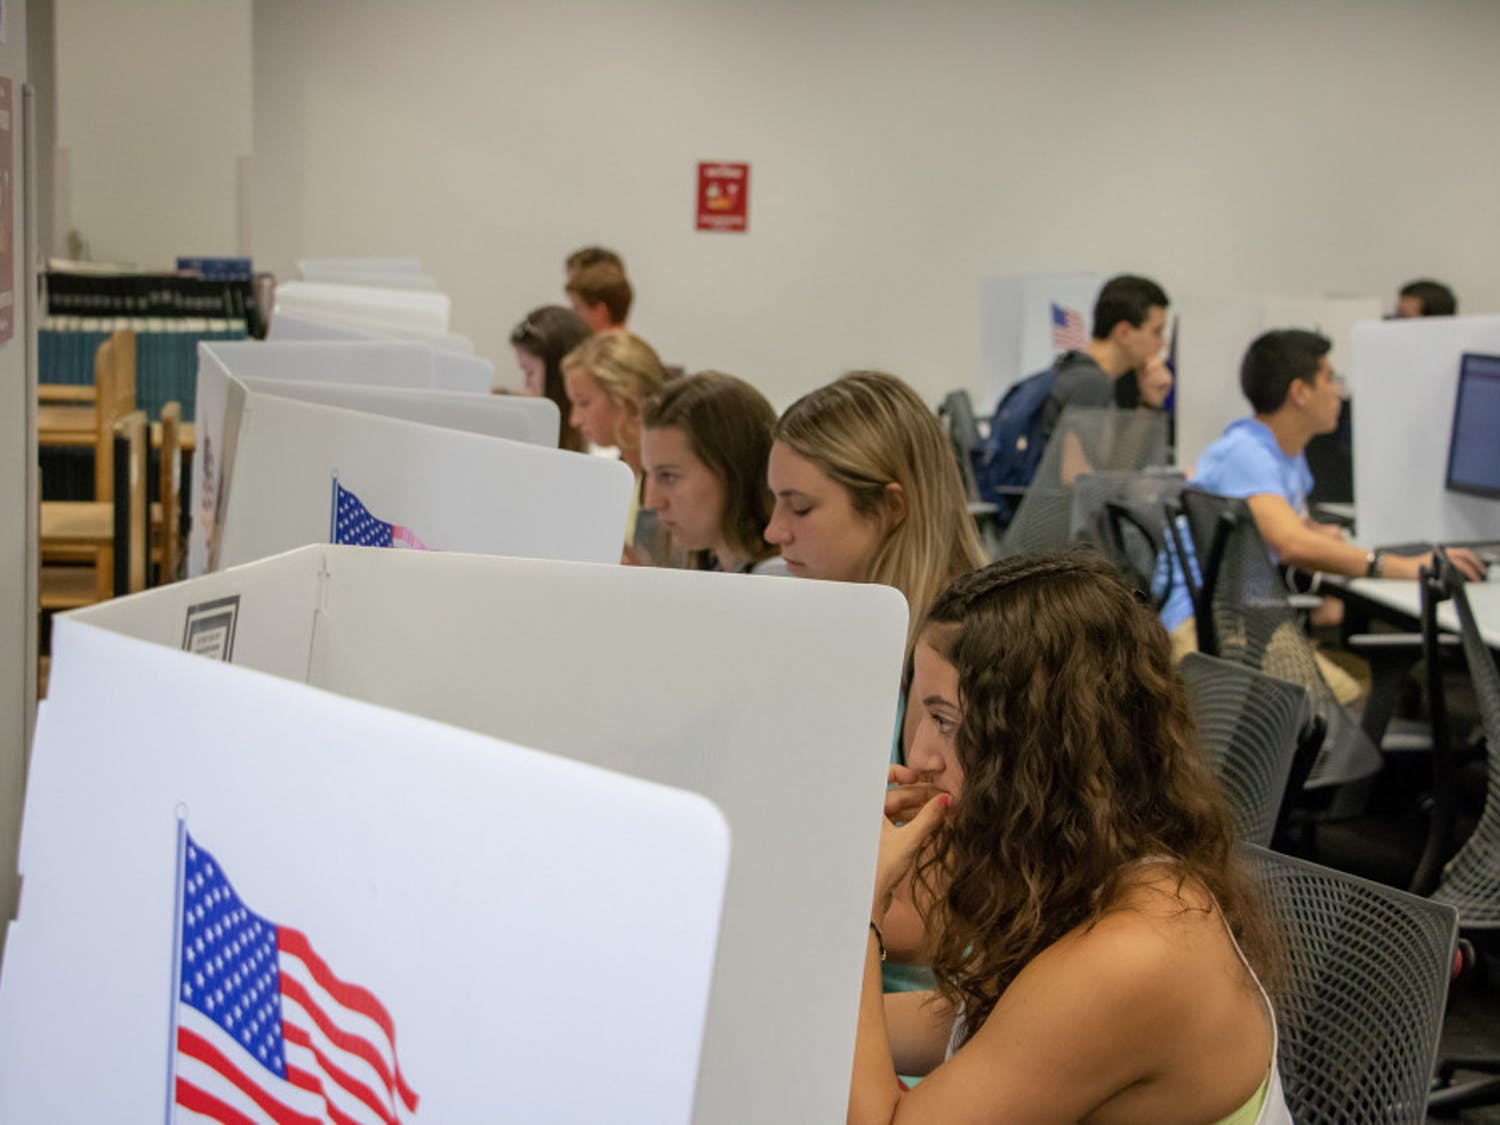 Students sit at voting stations at the Marston Science Library computer lab polling location and cast their votes for last Fall's Student Government elections on Sept. 25. Marston is one of several locations students can vote at on Wednesday.